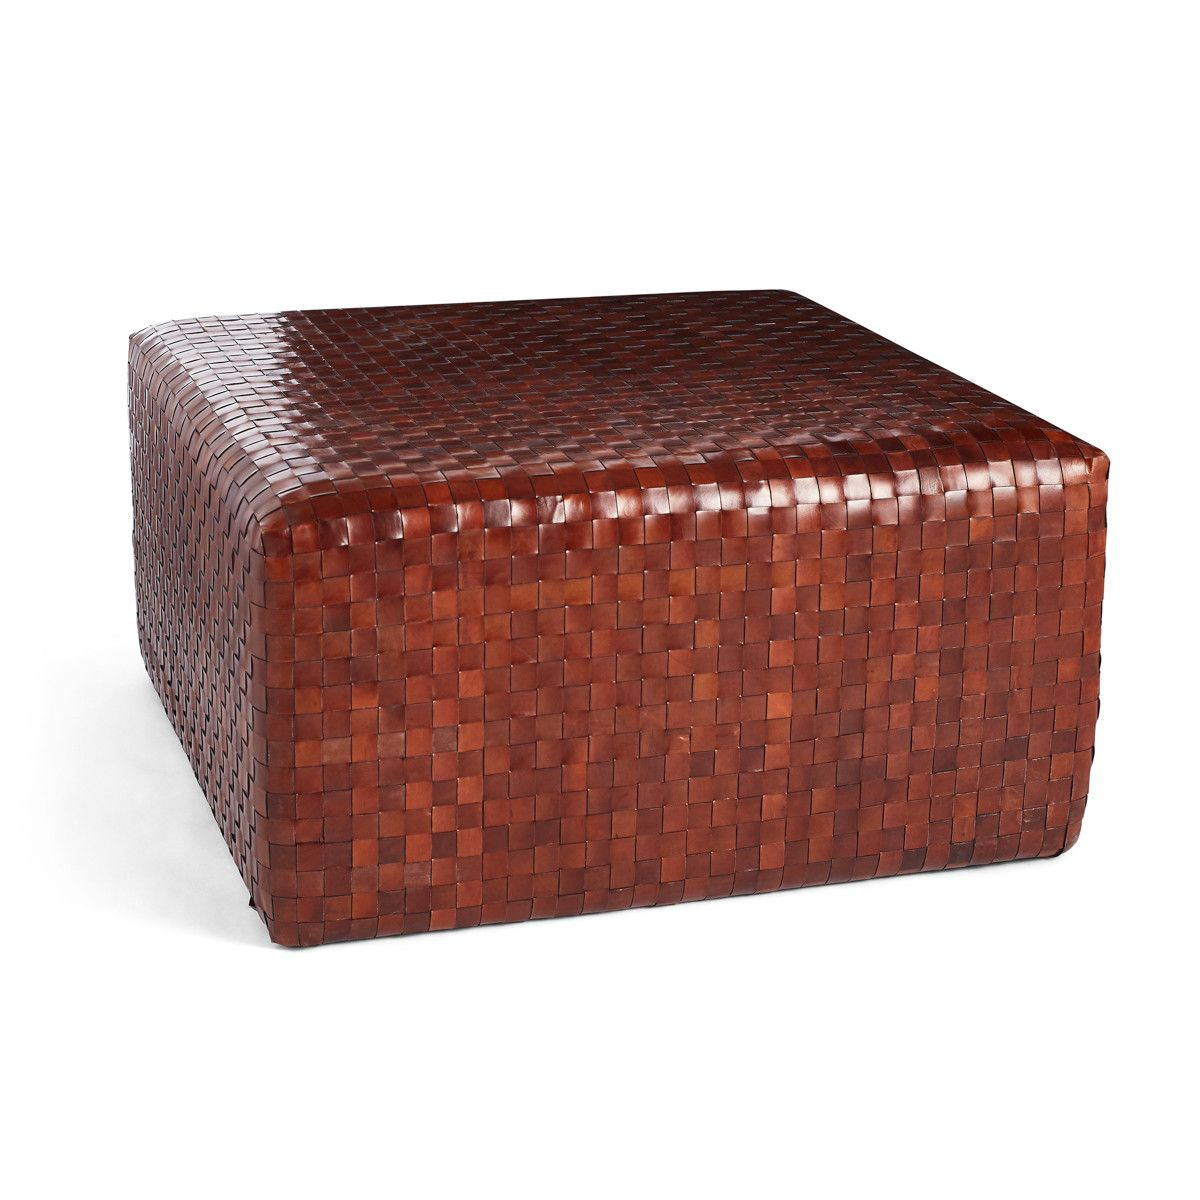 Magnificent Woven Leather Ottoman Benches Poufs Ottomans In 2019 Dailytribune Chair Design For Home Dailytribuneorg